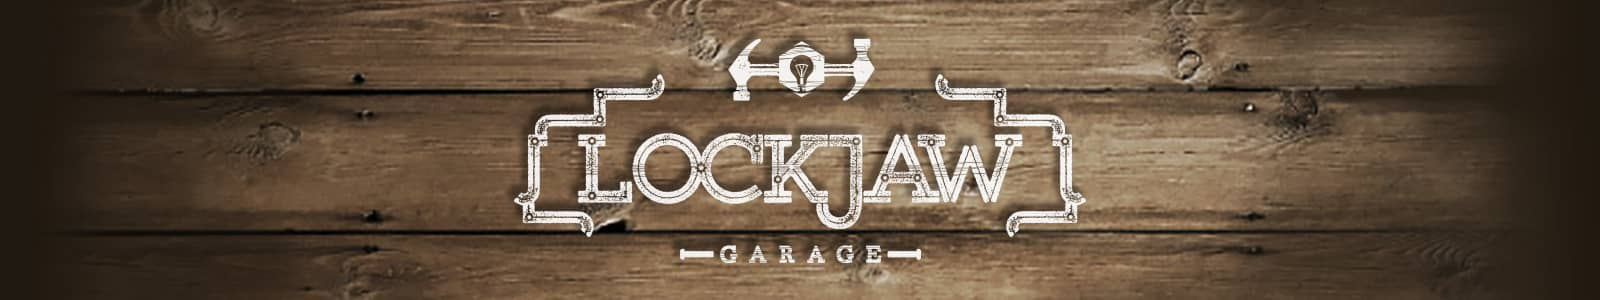 Lockgaw Garage